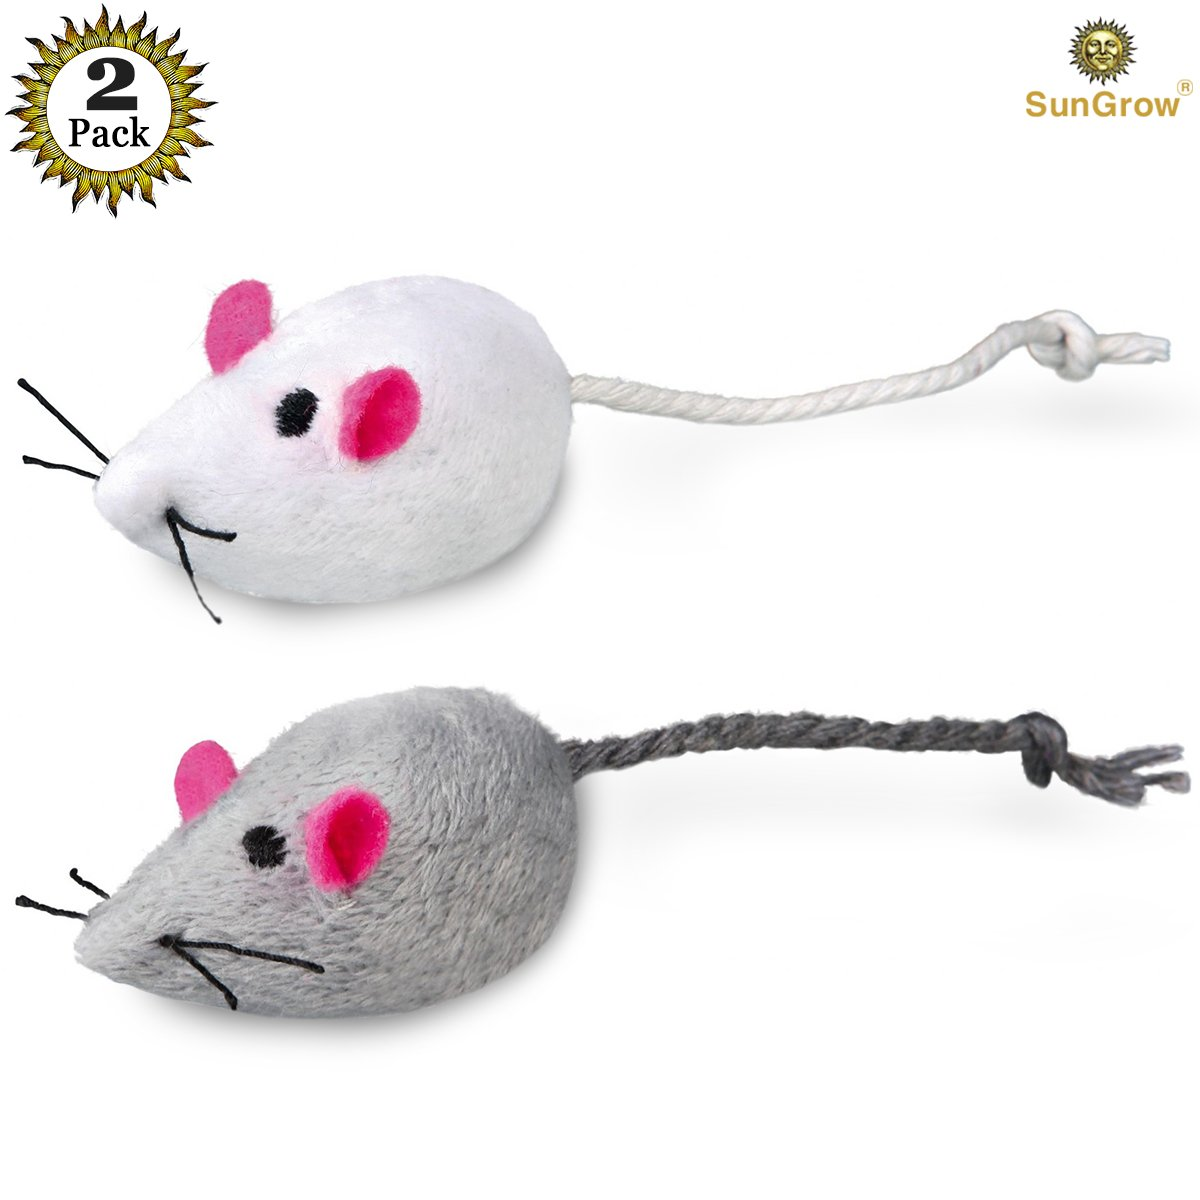 2 Mice Toys for Cats - Rattling Sound Thrills, Promotes Agility, Coordination - Boosts Natural Hunting, Pouncing Instinct - Interactive, Durable, Safe to Chew - Fun for Hours